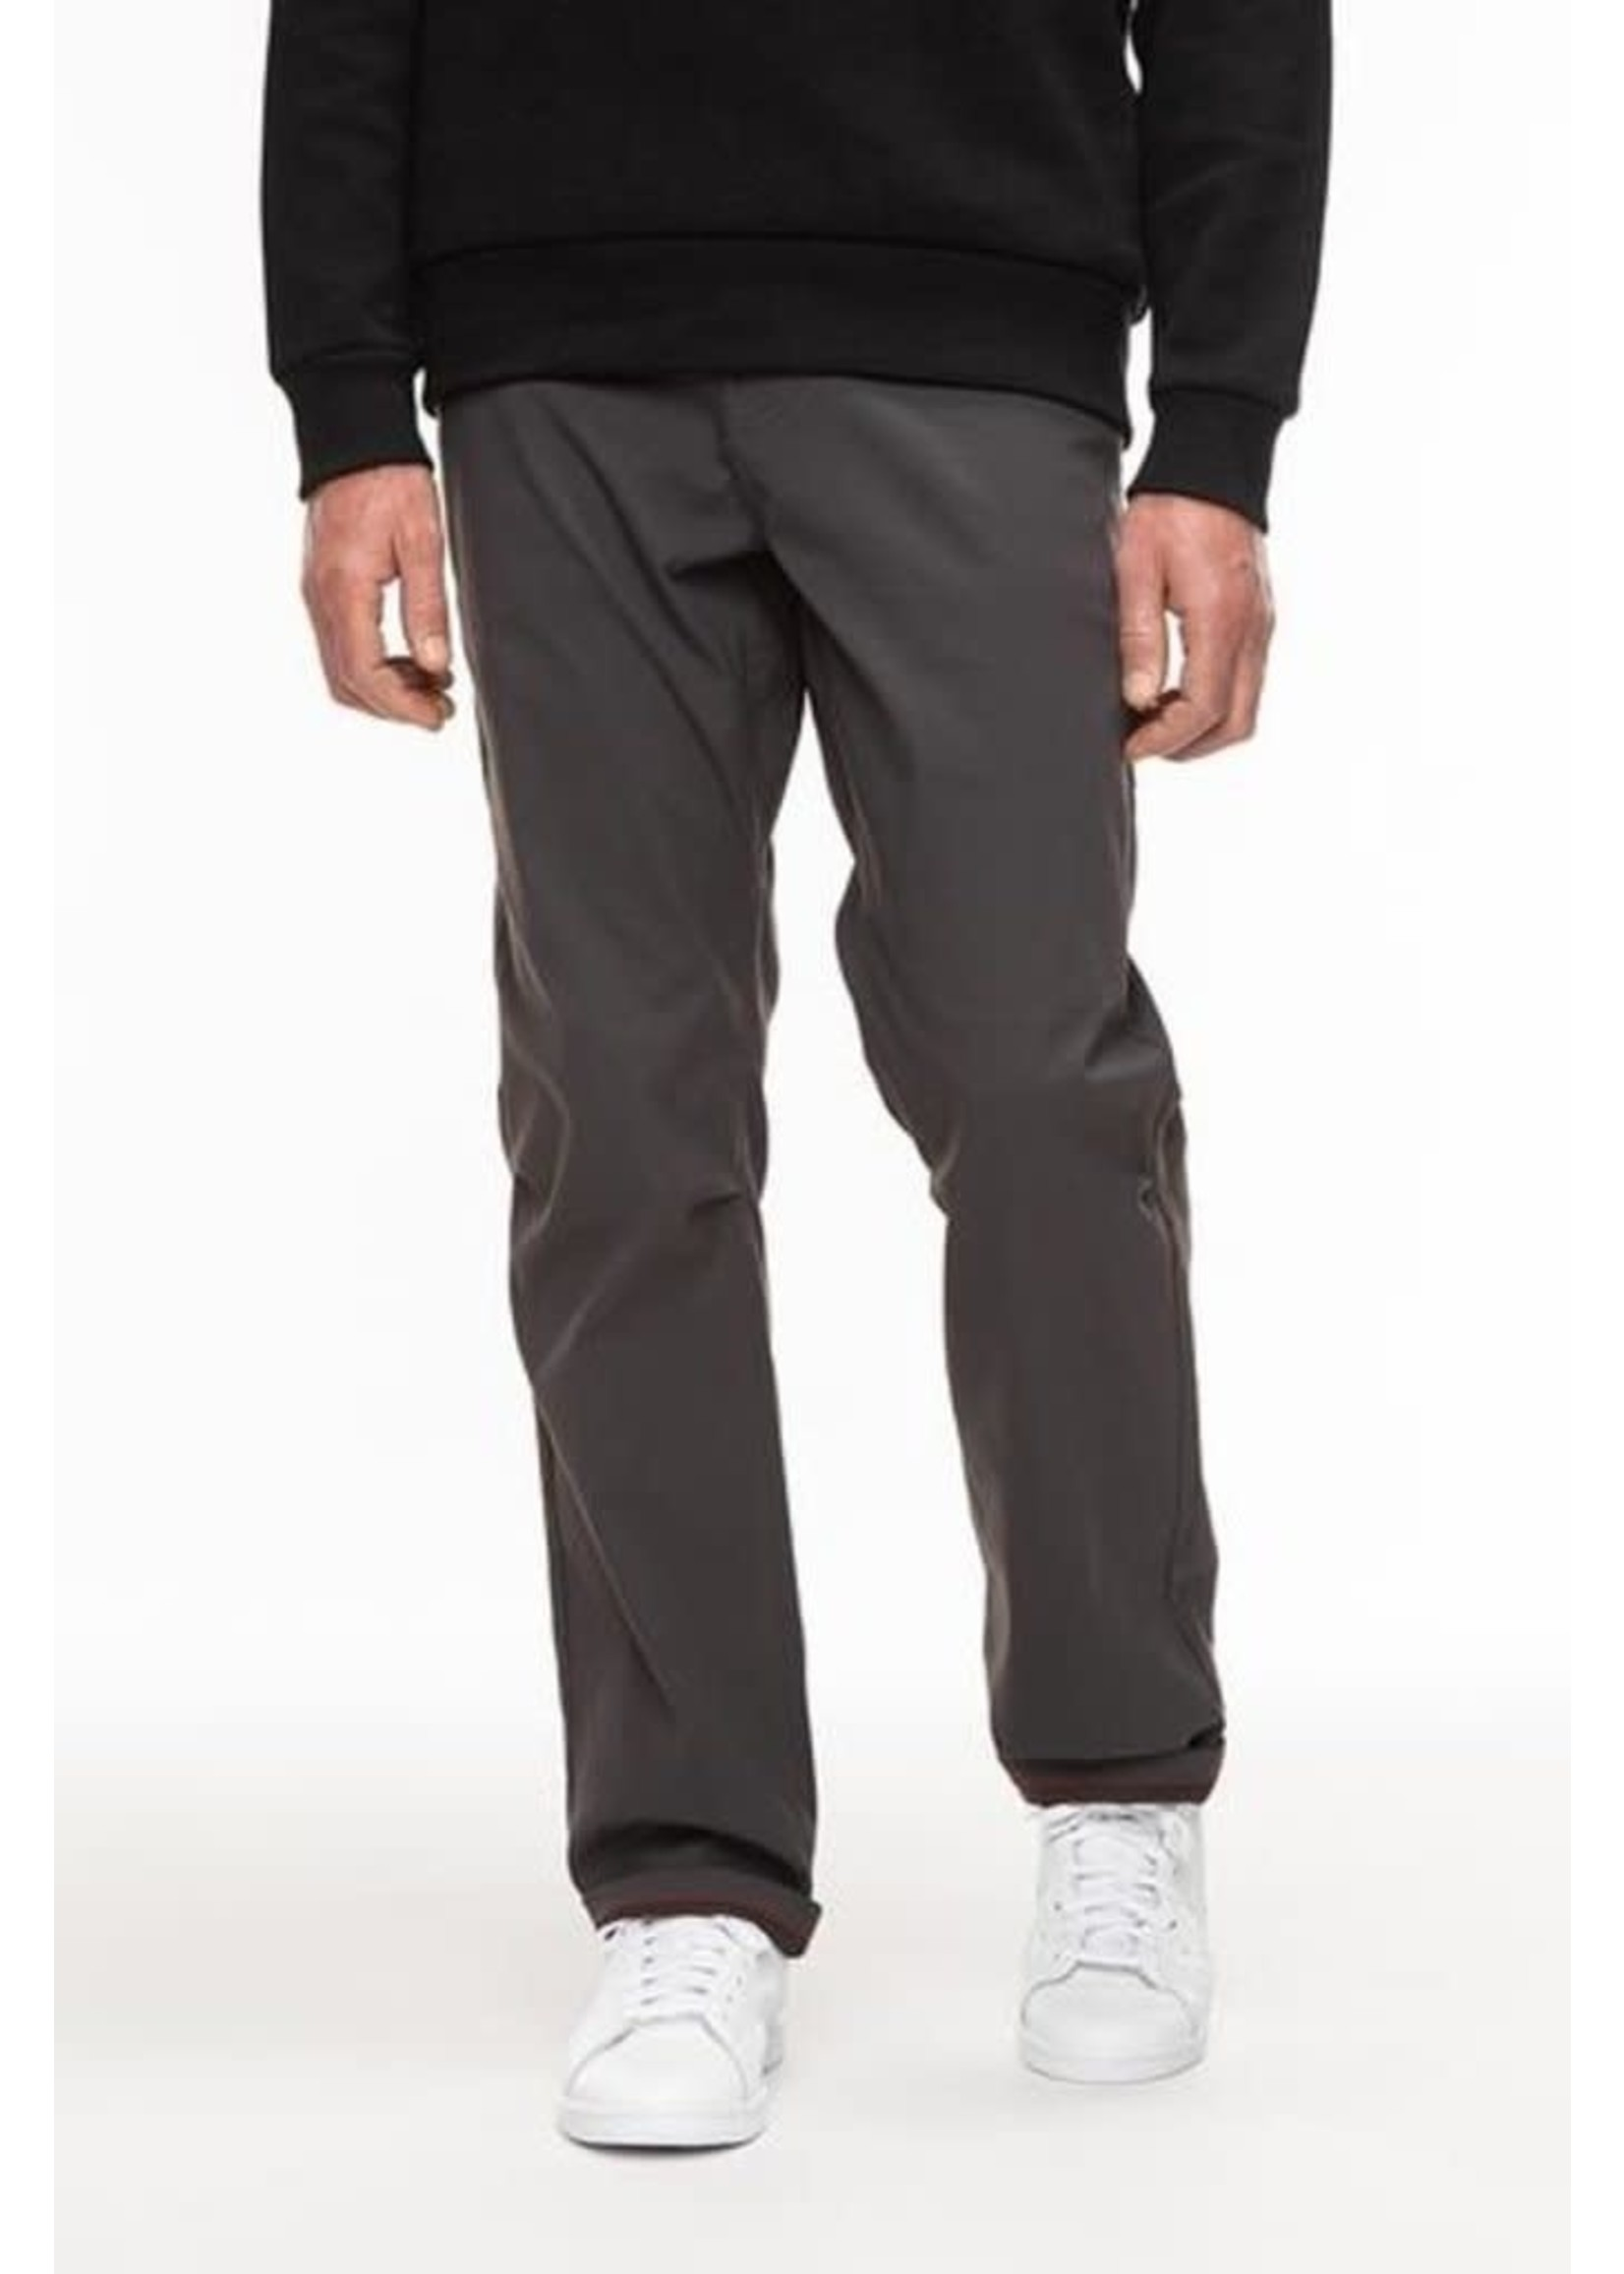 686 686 Everywhere Pant - Relaxed fit